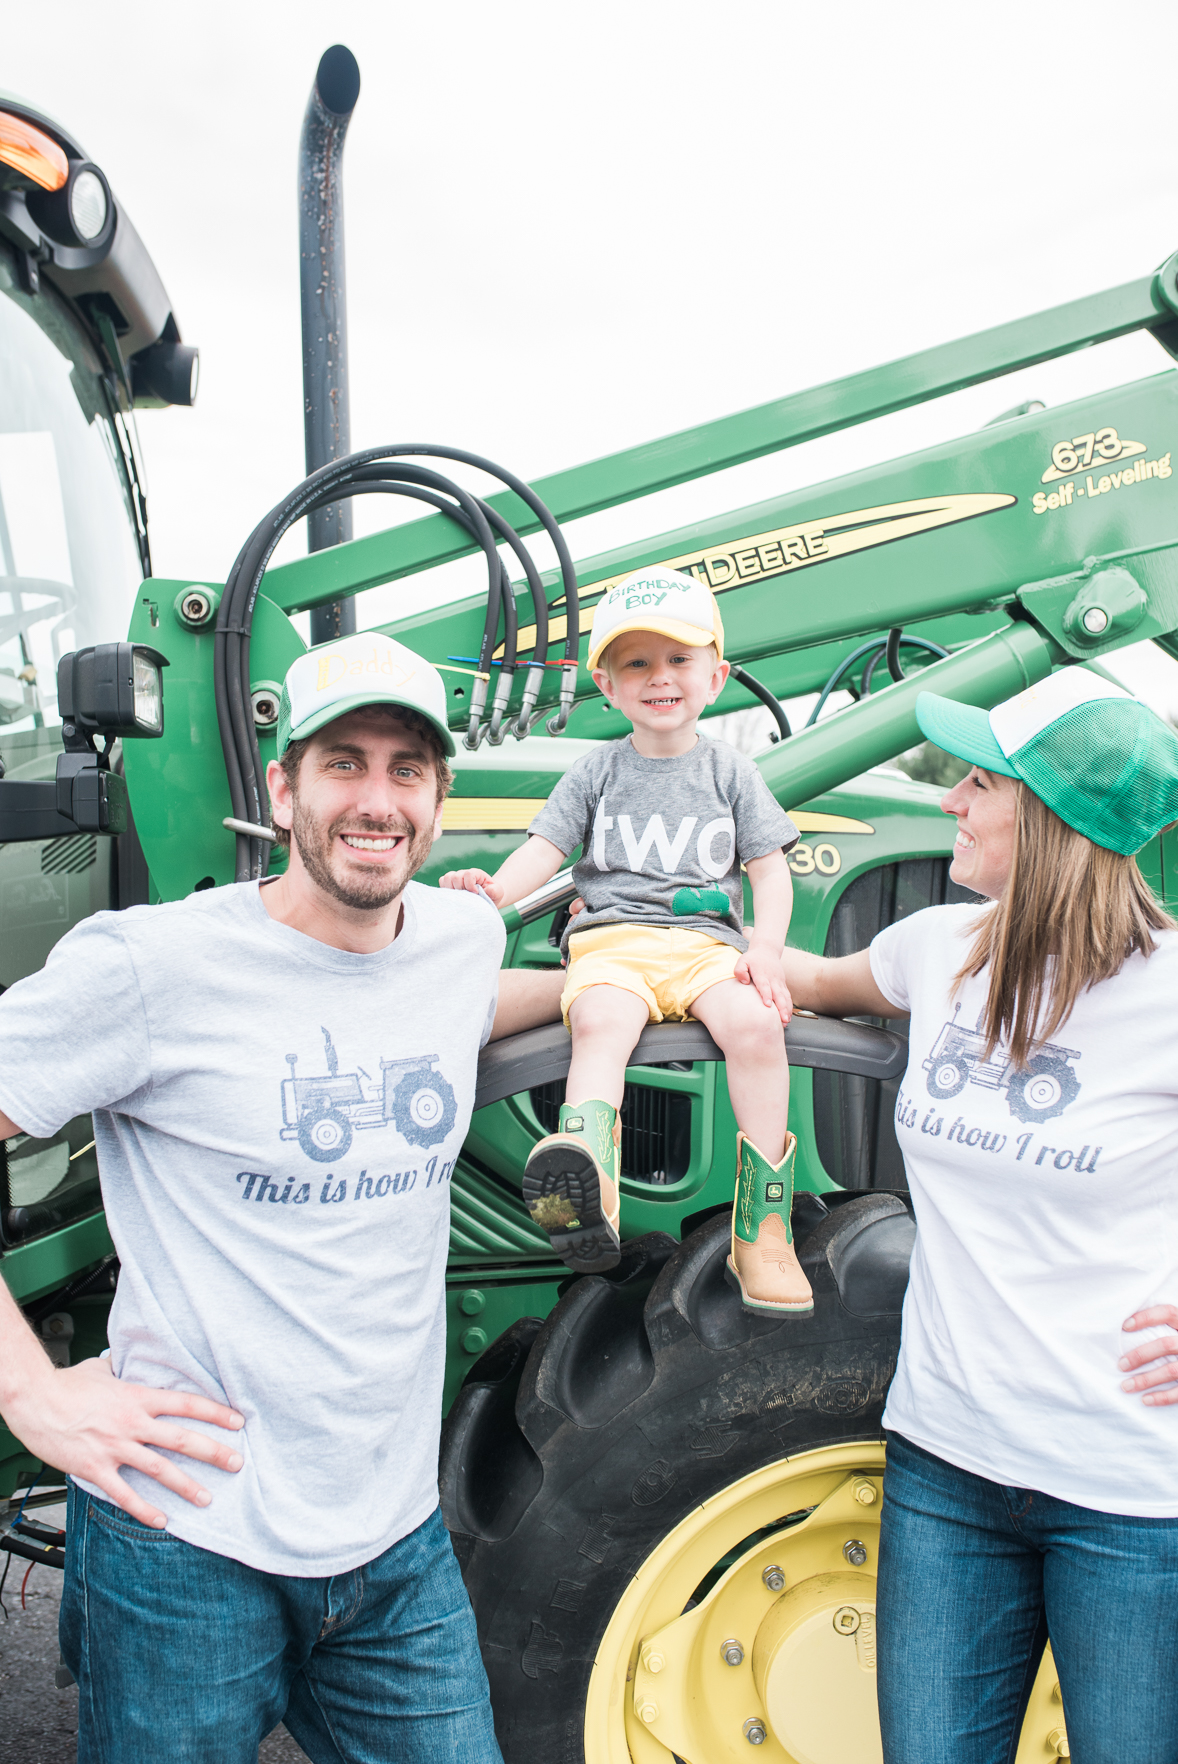 Baltimore-Maryland-harford county-photographer-family-lifestyle-tractor party-photos-by-breanna-kuhlmann-29.jpg